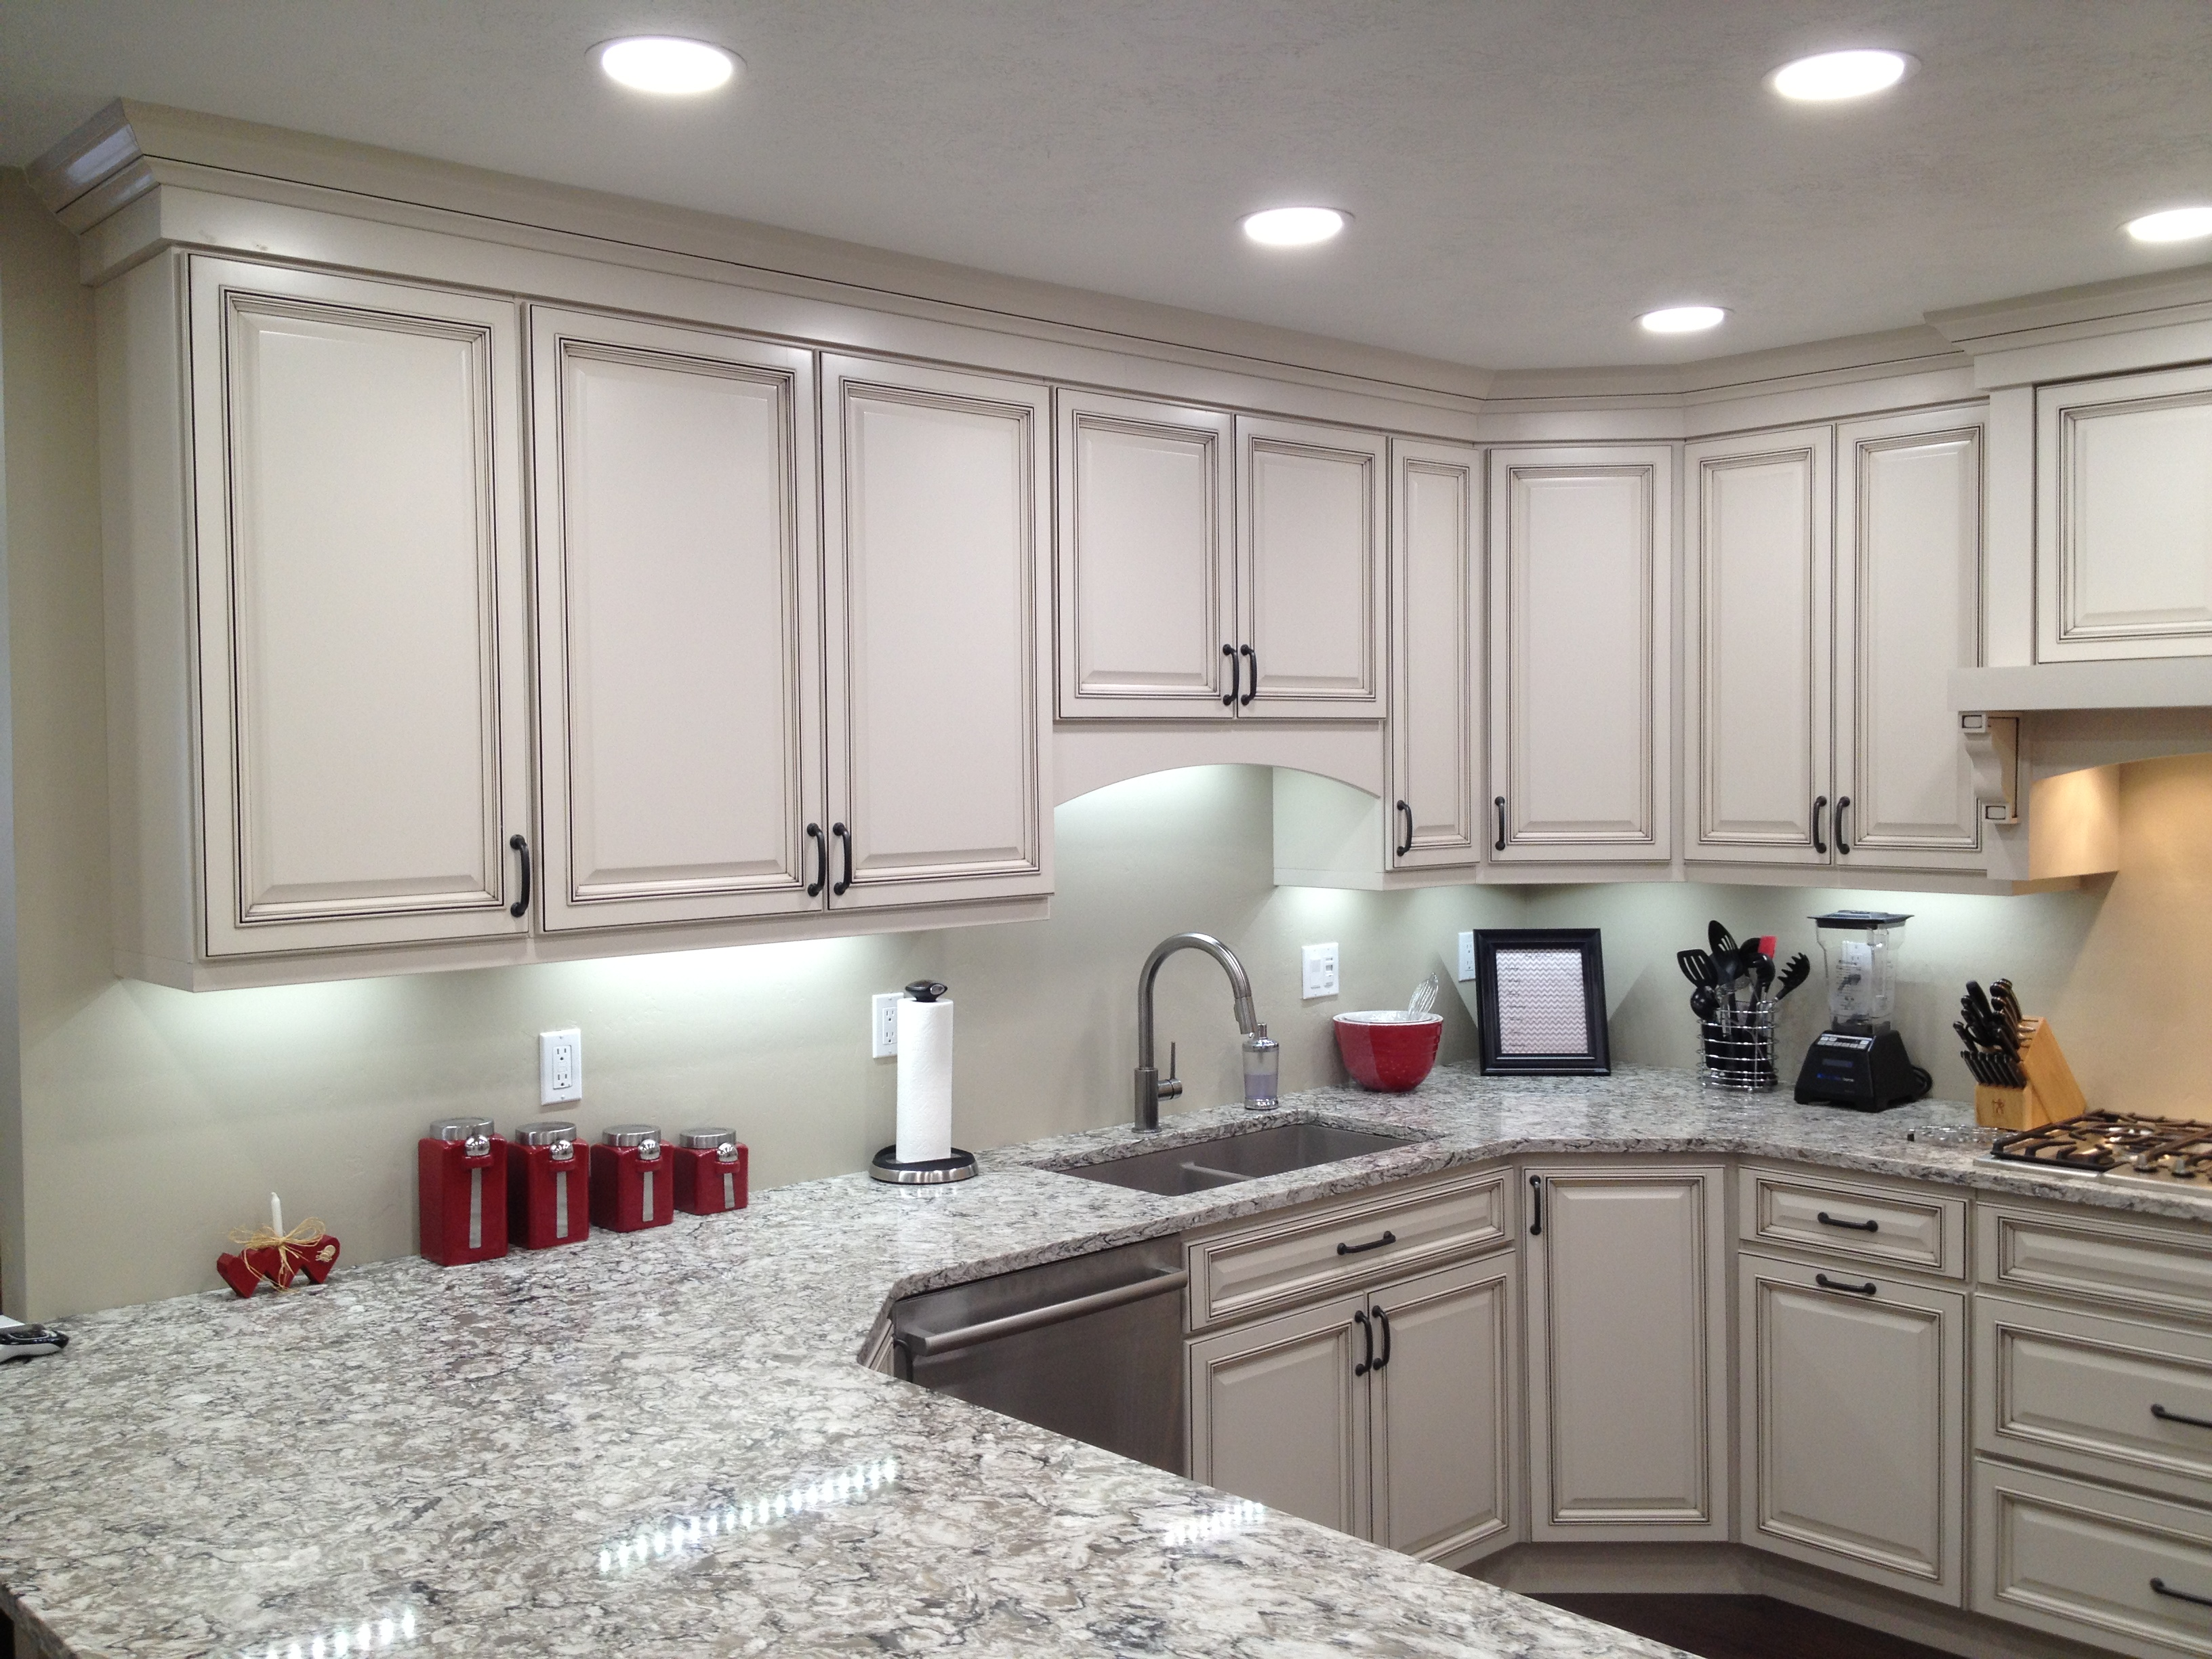 countertop lighting led. pax led under cabinet lighting countertop led i